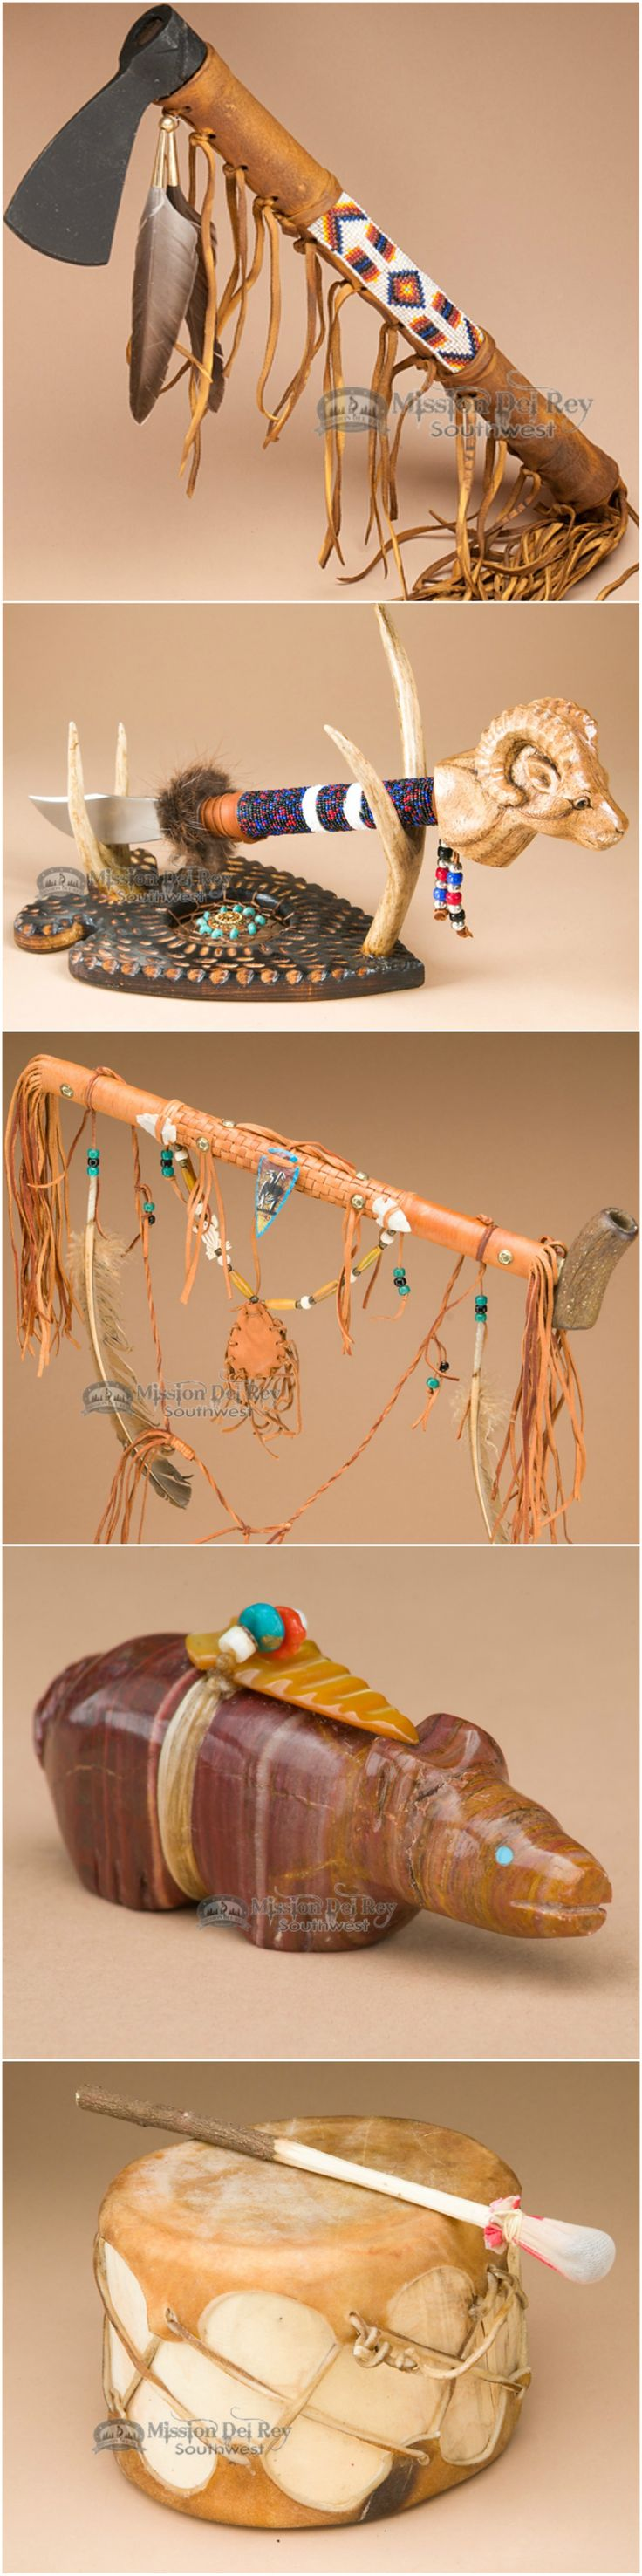 Authentic Native American Handcrafts And Artifacts At Http Www Missiondelrey Com